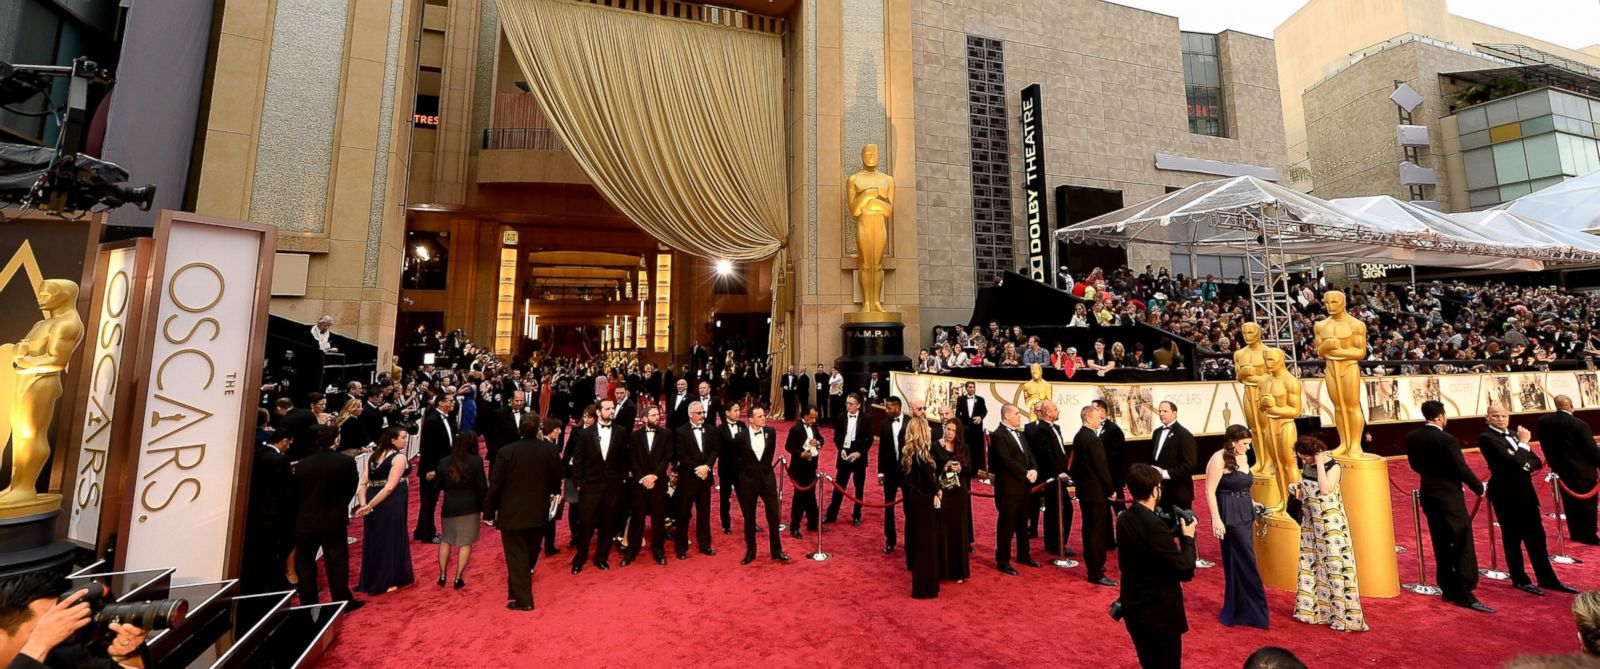 PHOTO: A general view of the red carpet at the Oscars held at Hollywood & Highland Center, March 2, 2014, in Hollywood, Calif.